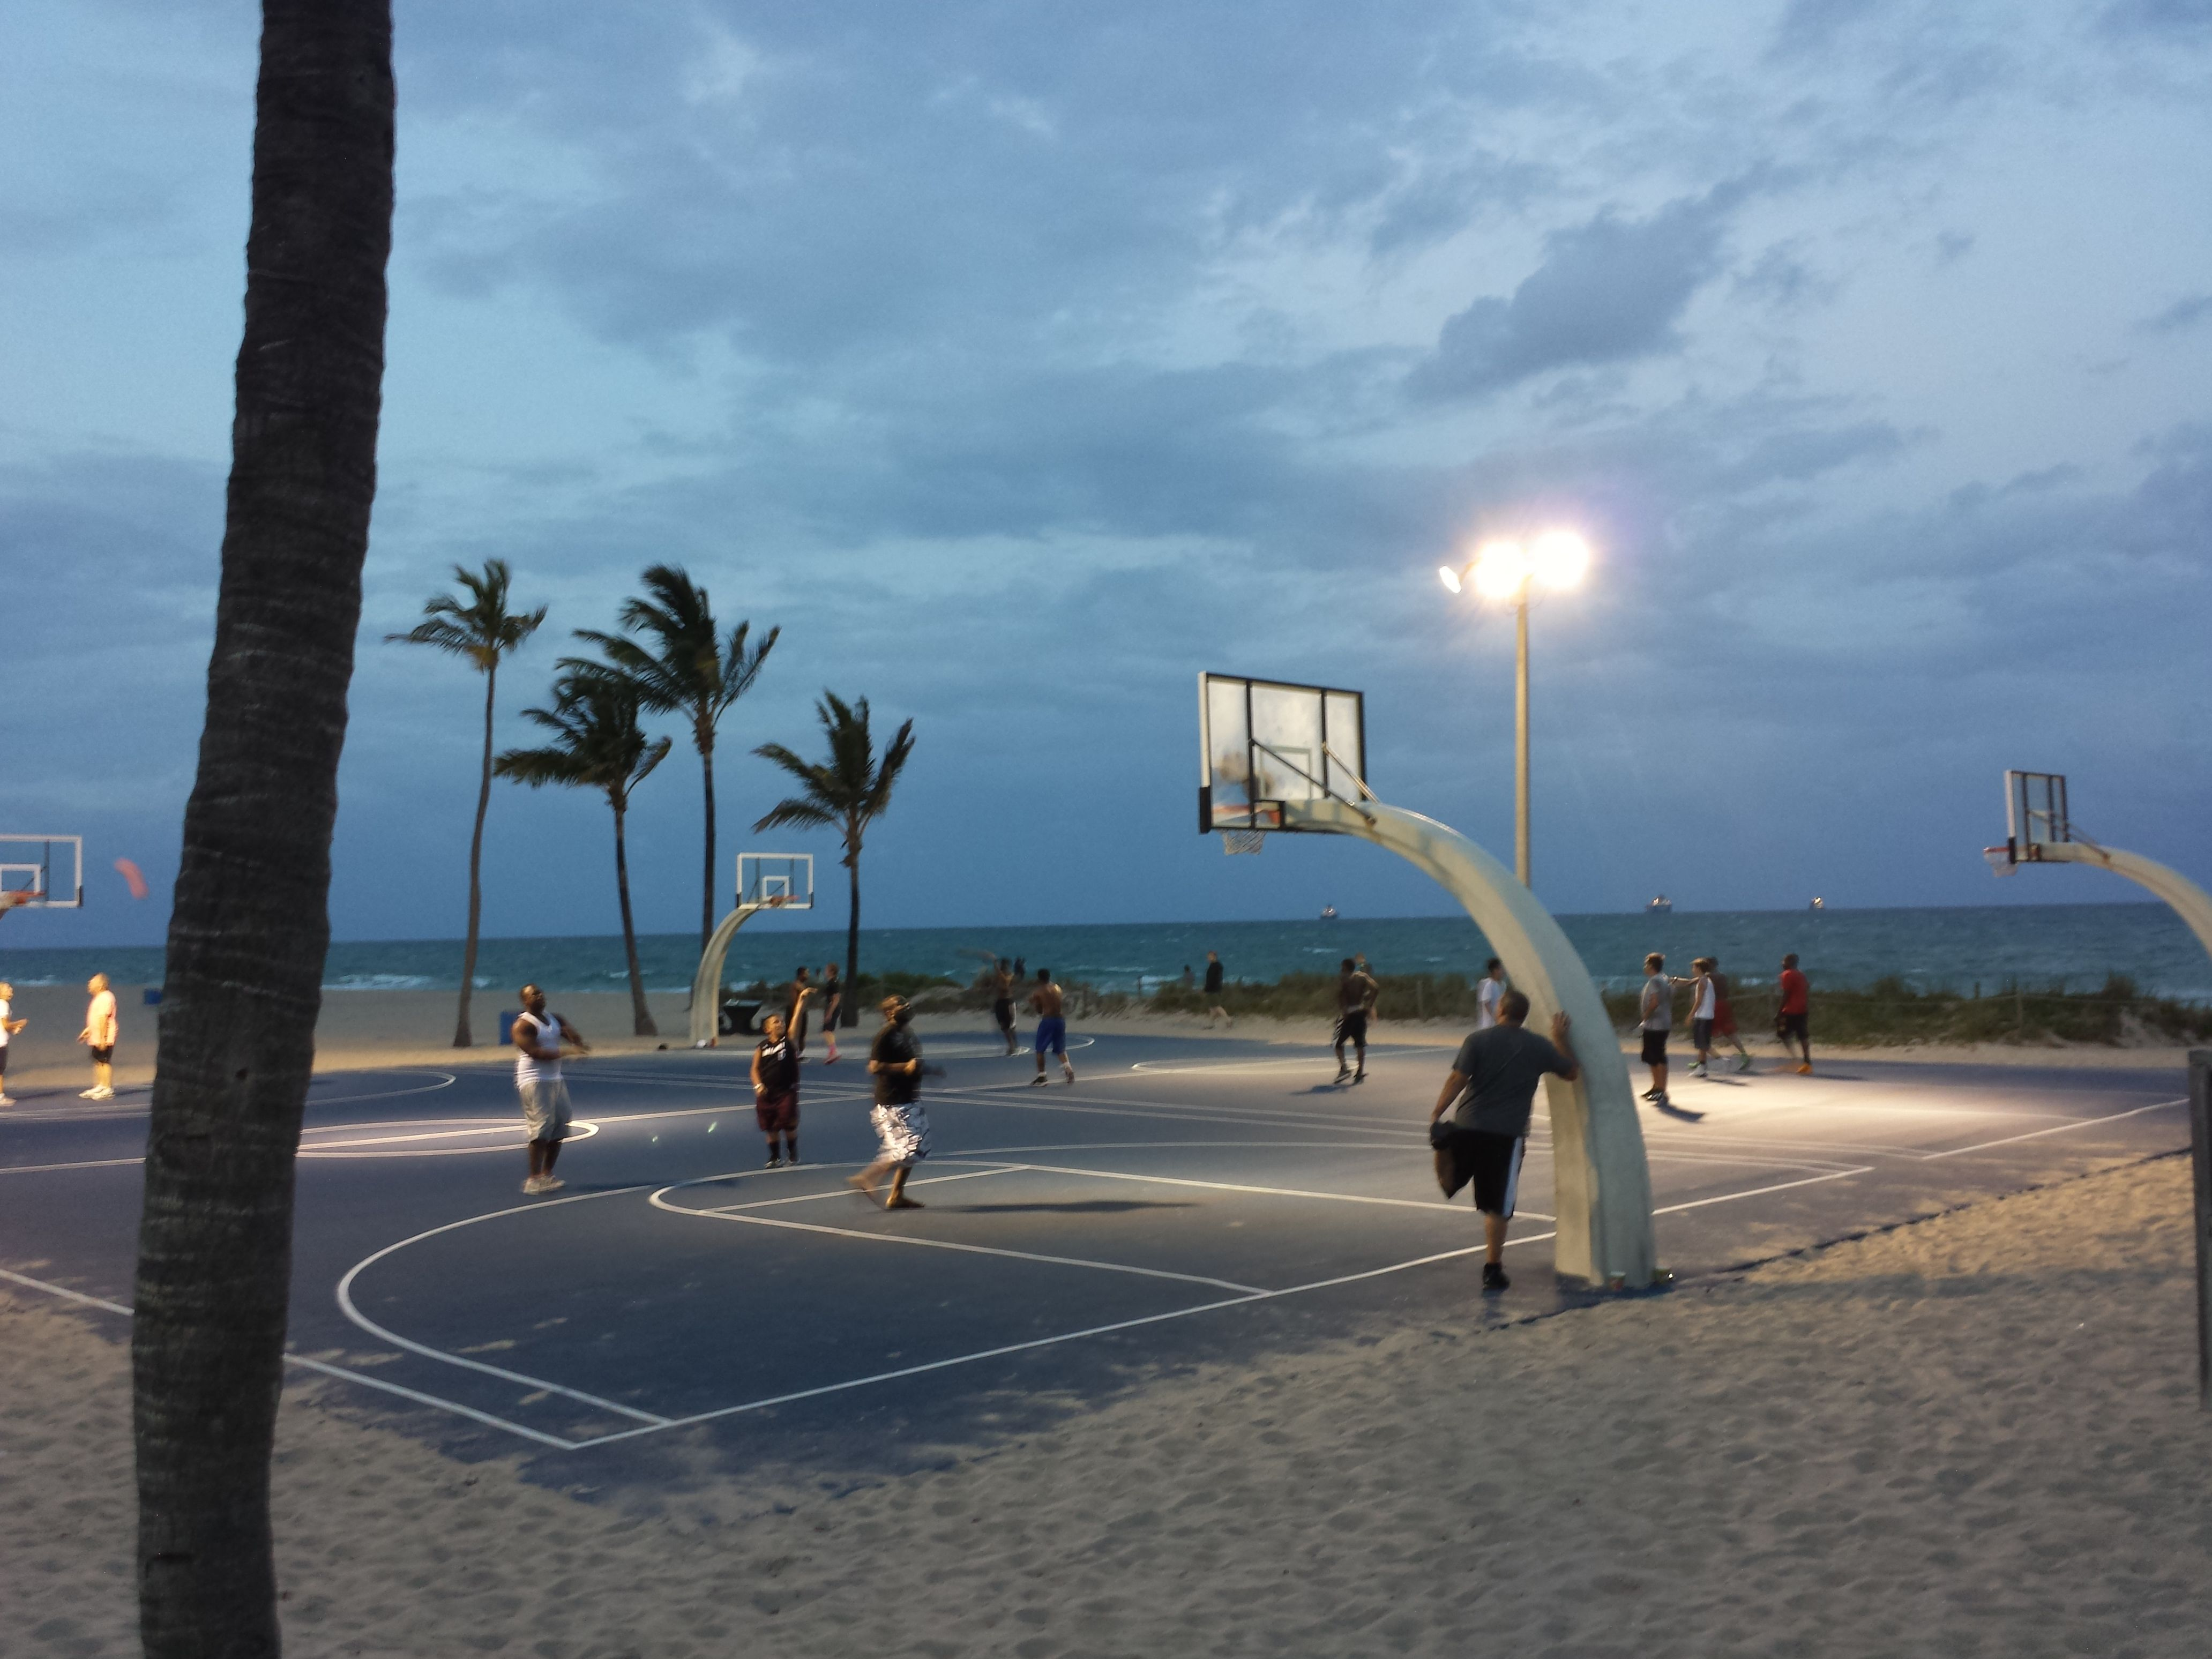 Fort Lauderdale Florida Vacation Rentals By Owner Beach Basketball Outdoor Basketball Court Basketball Park